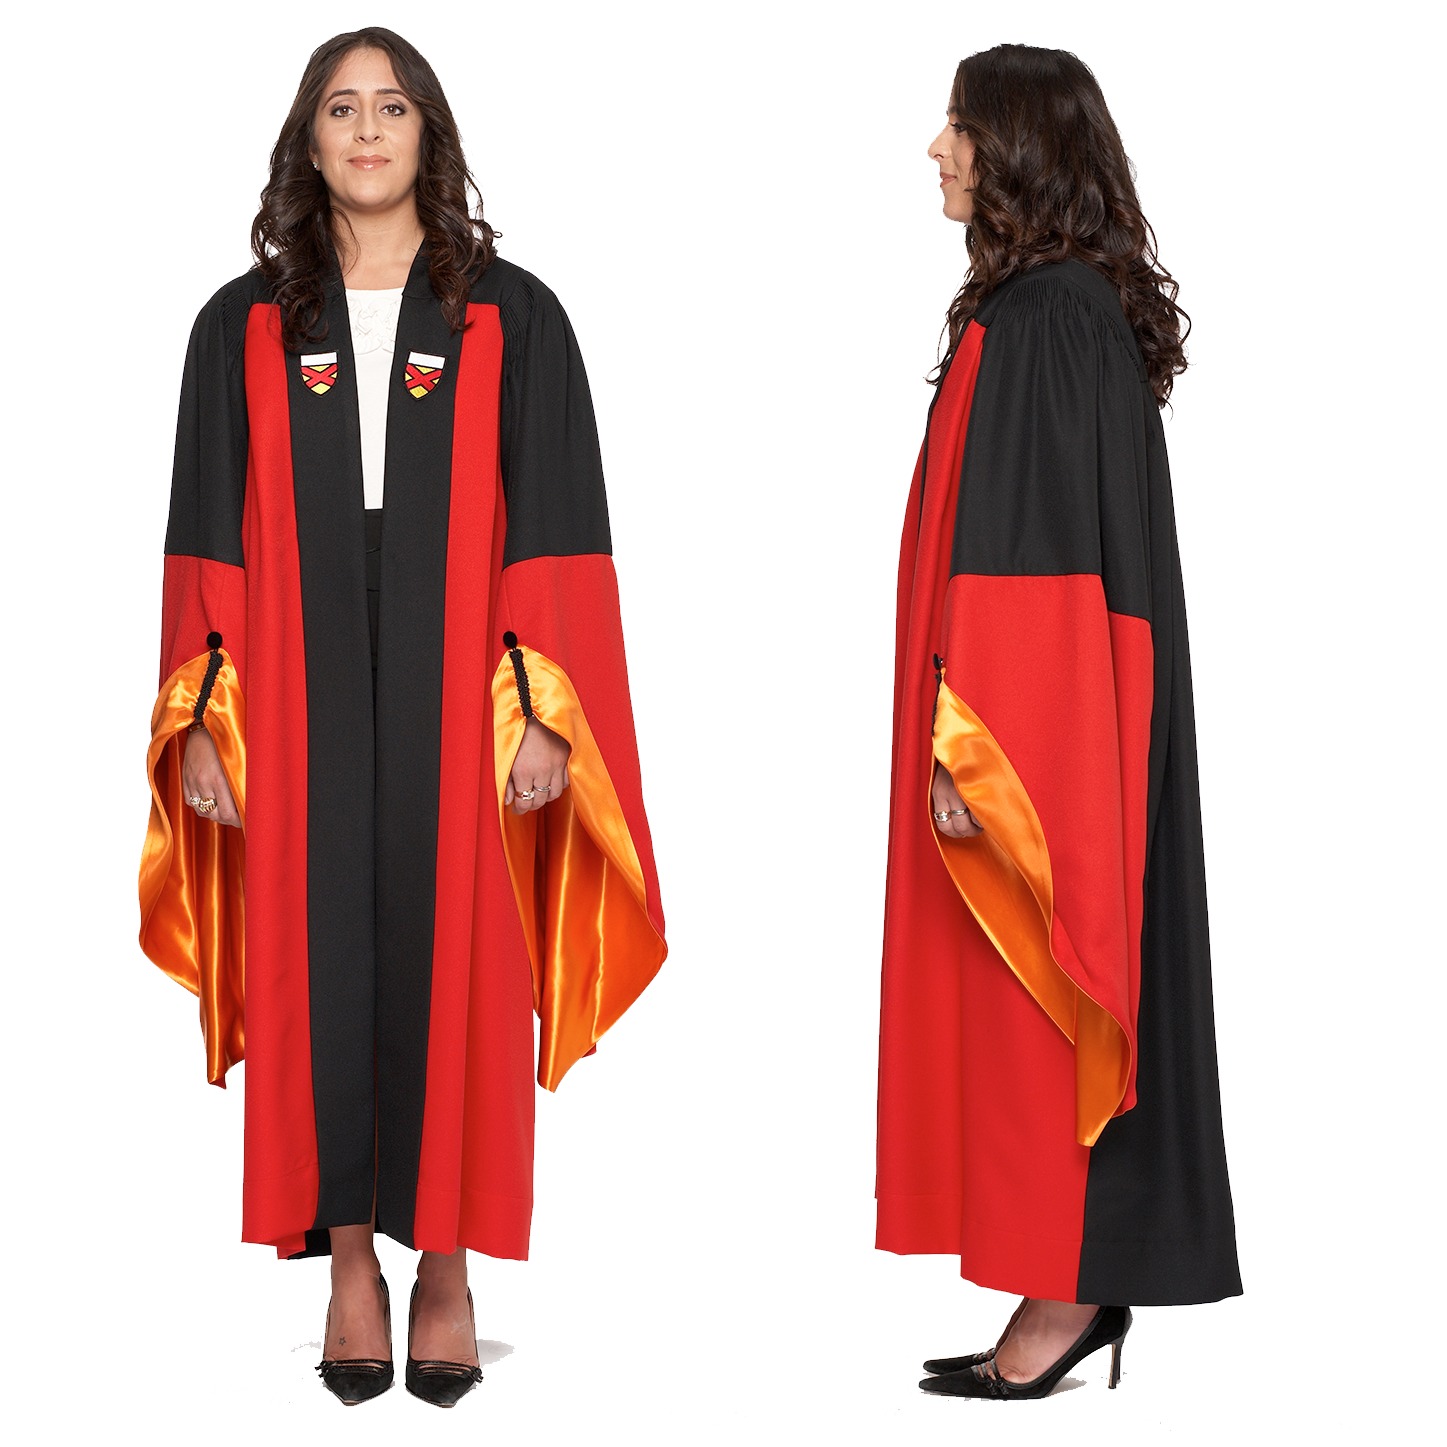 Stanford PhD Gown - All Field of Study Degree Colors in Stock